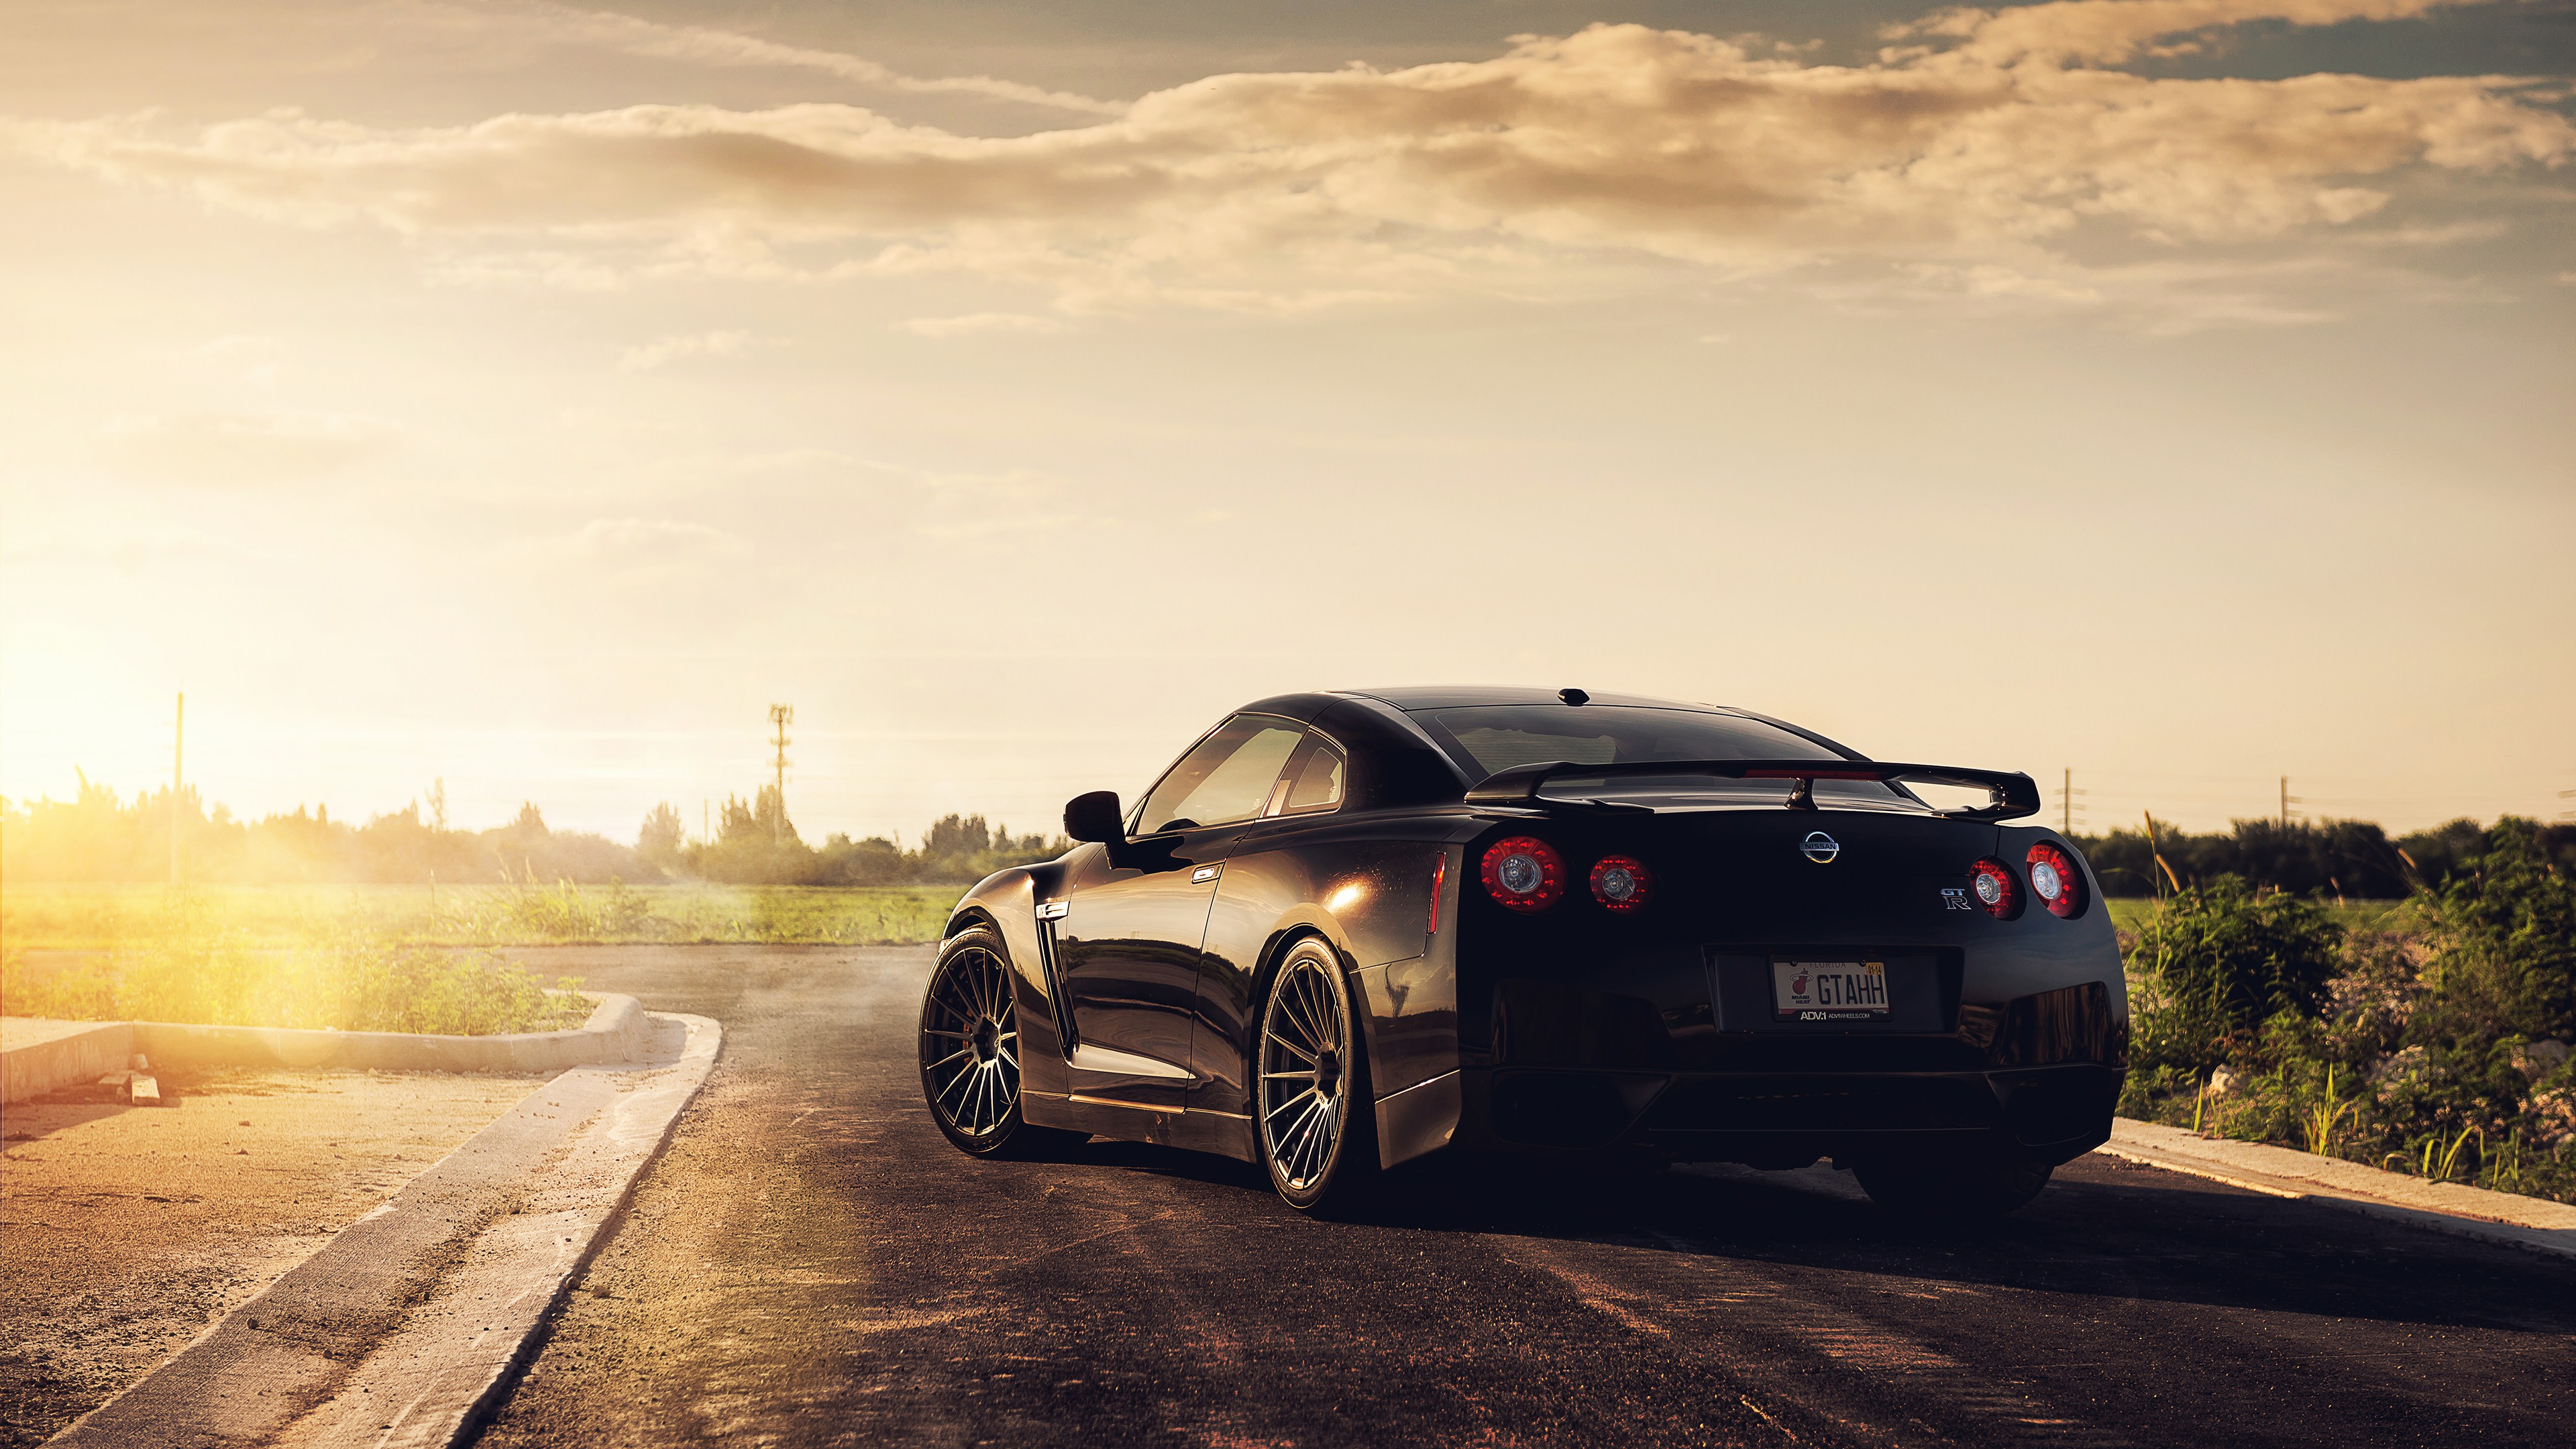 Hd Car Wallpapers For Mobile 28 Wallpapers: 1 Nissan ADV 1 GTR HD Wallpapers